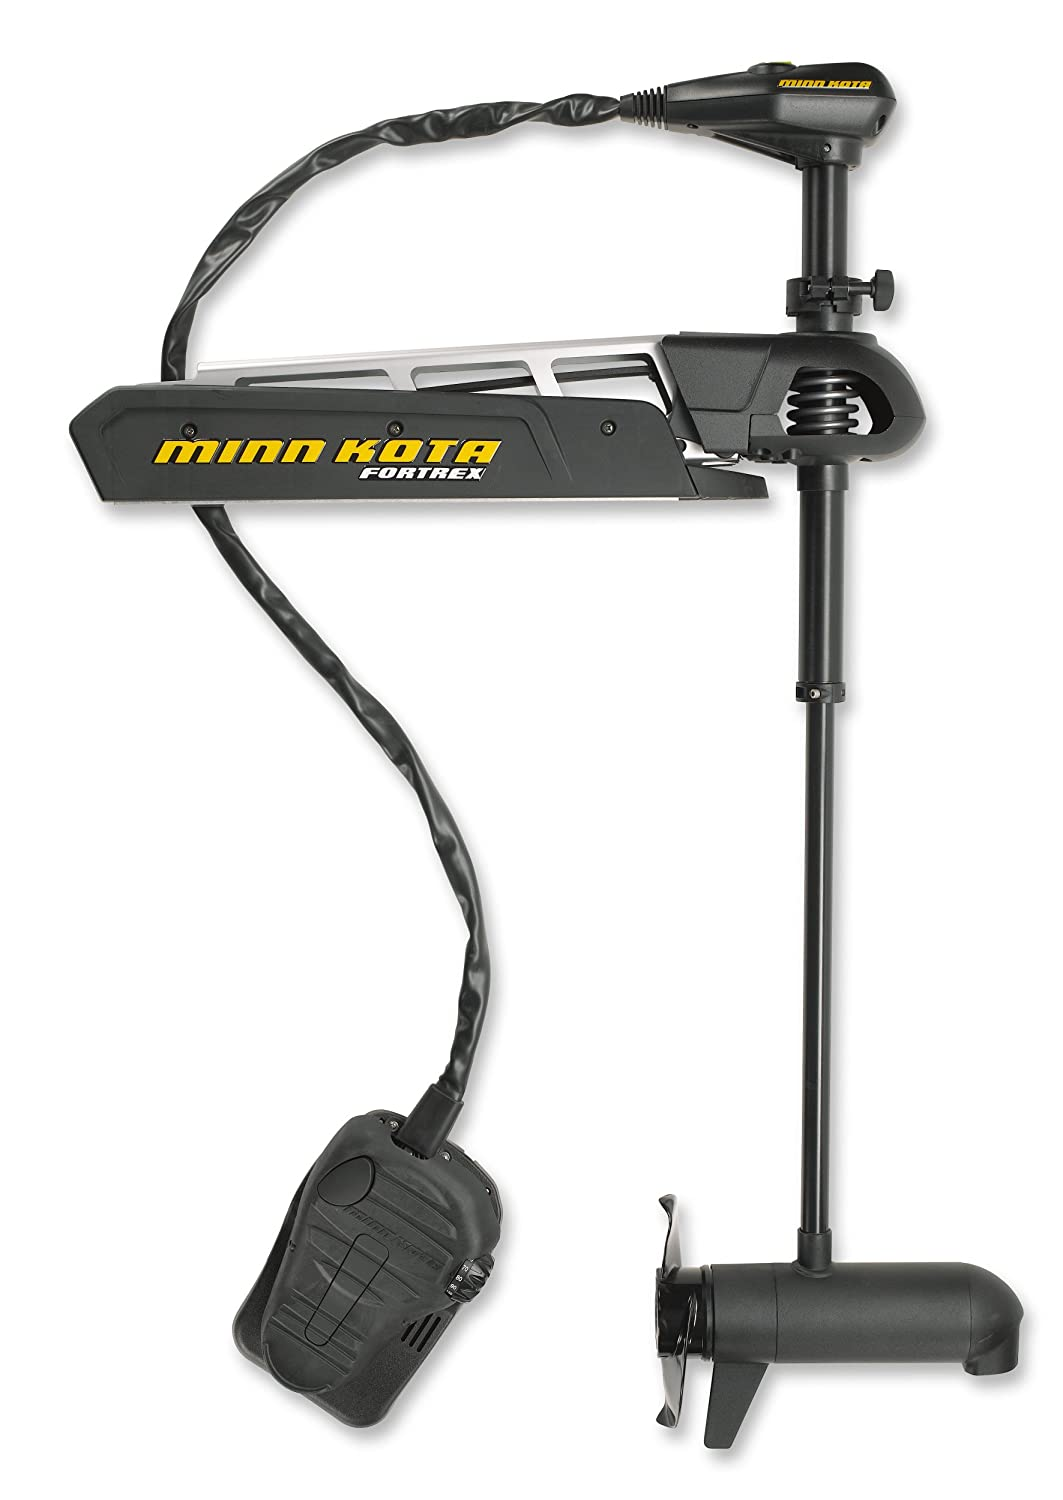 71uVJM7lgTL._SL1500_ amazon com minn kota riptide 80 sf saltwater bow mount trolling Minn Kota Riptide Parts List Diagram at soozxer.org